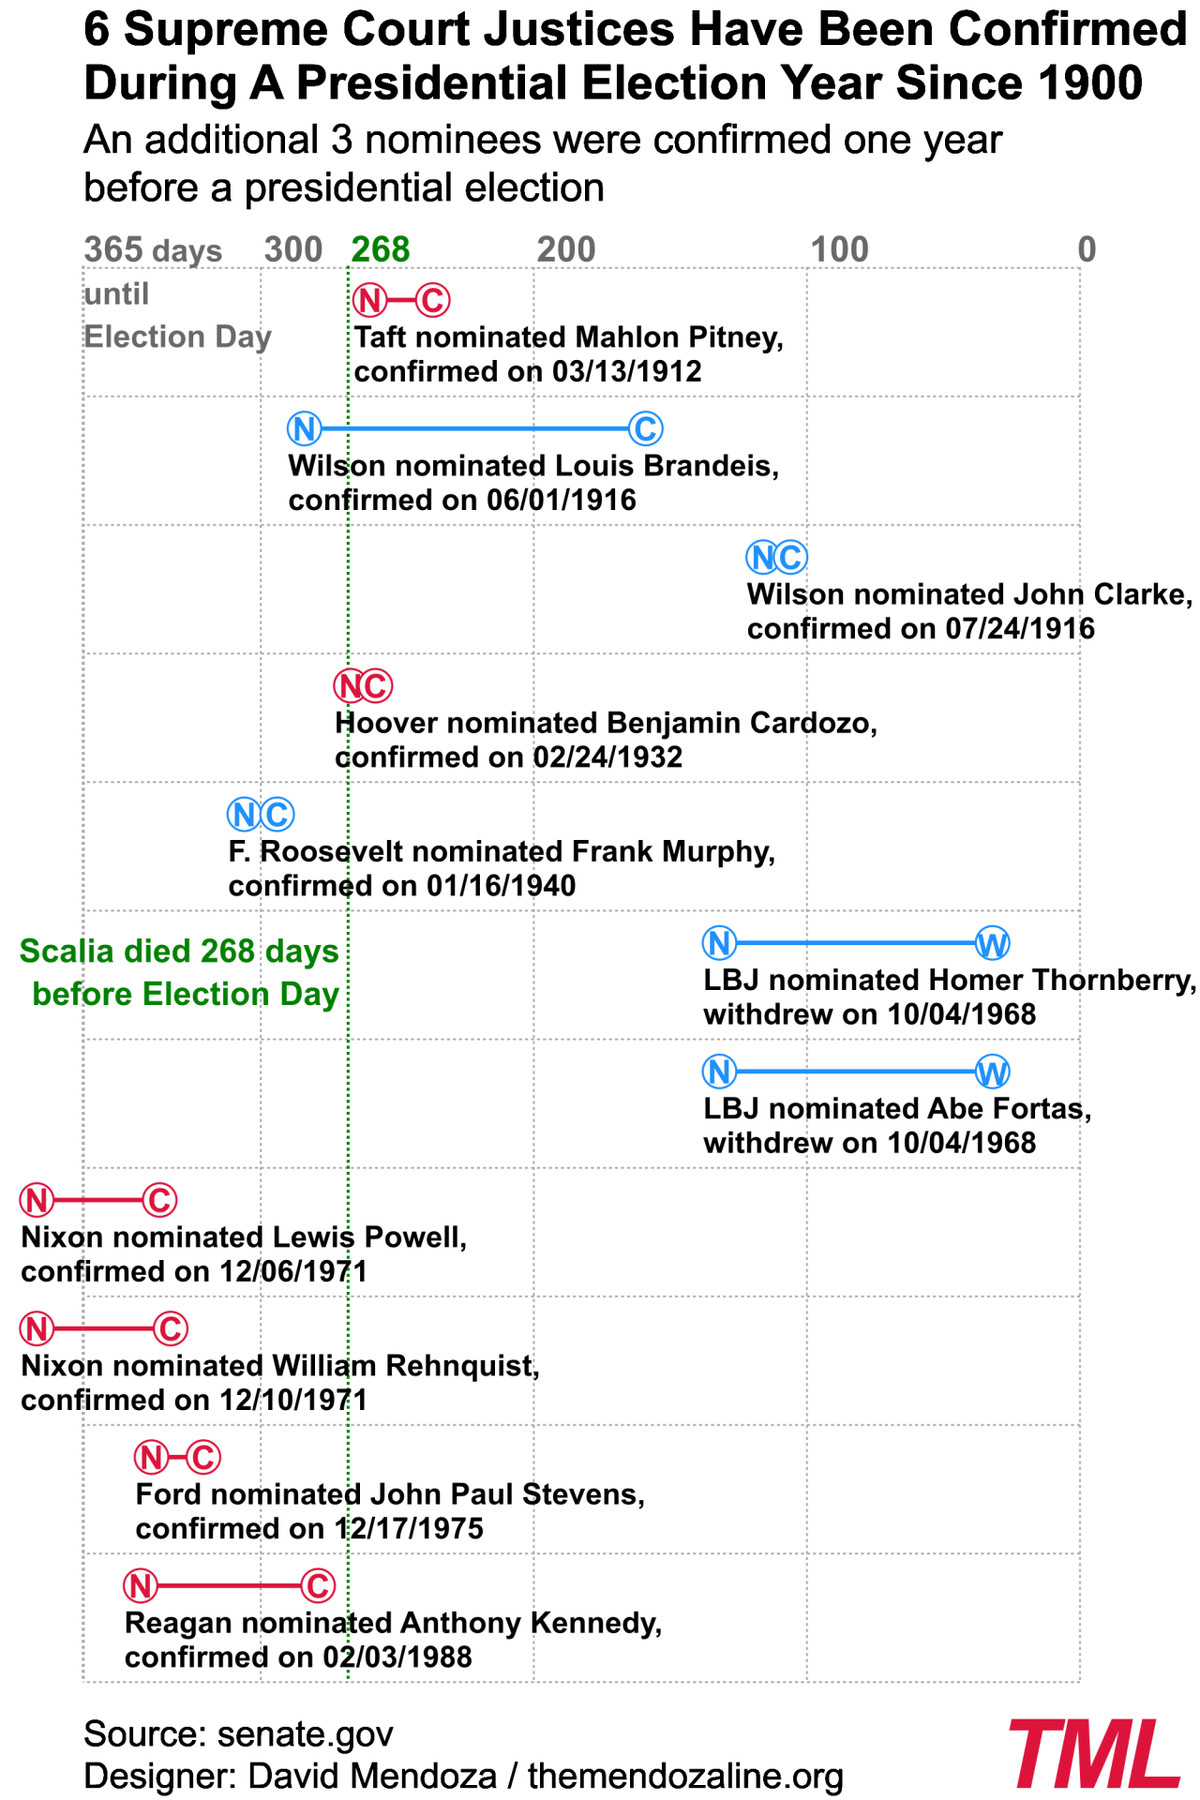 Since 1900, six Supreme Court justices have been confirmed during a presidential election year.